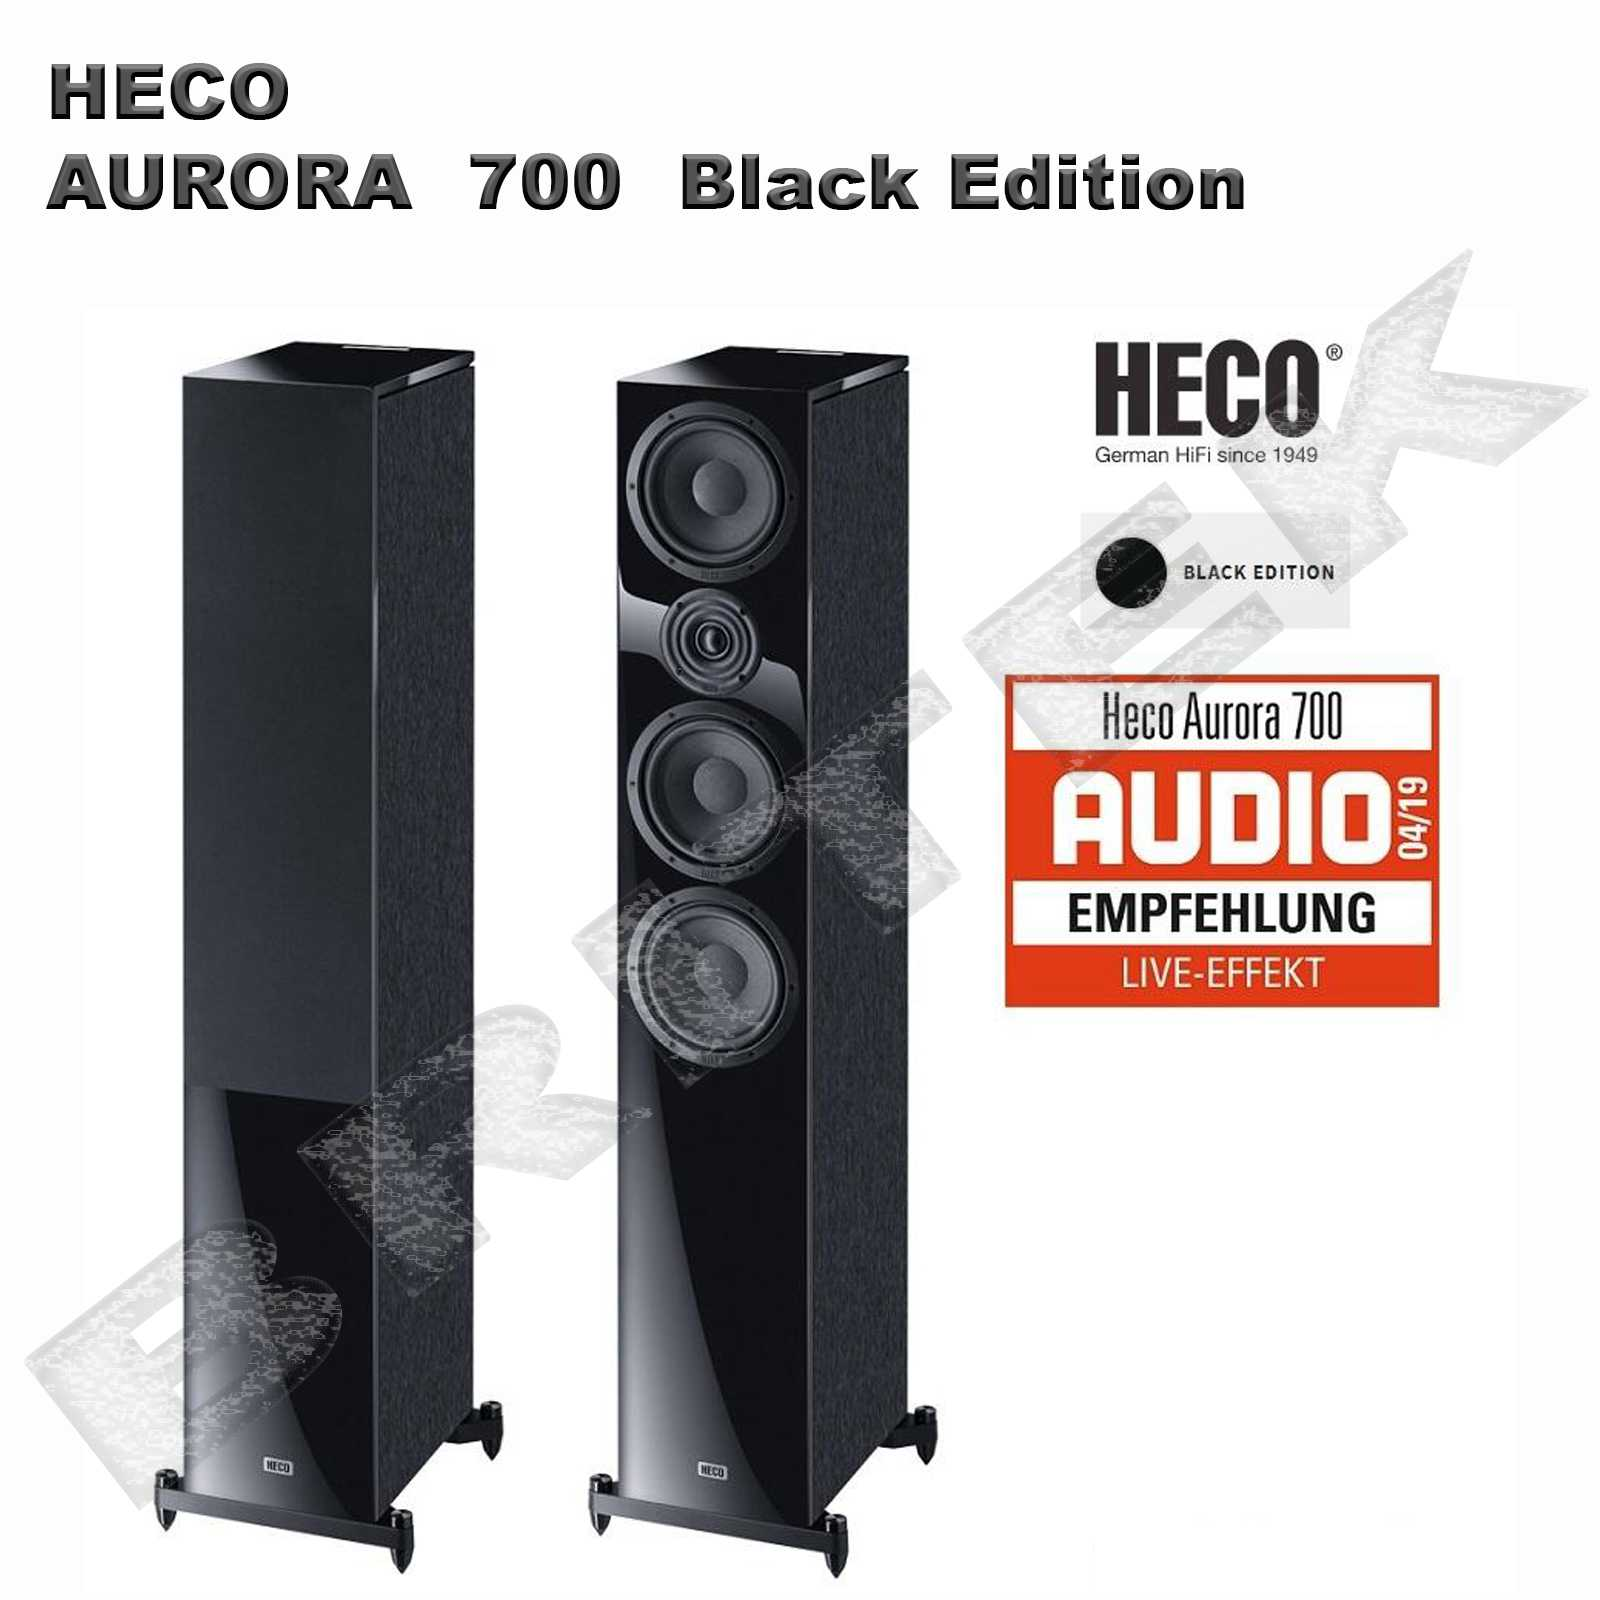 HECO-Aurora 700 black edition